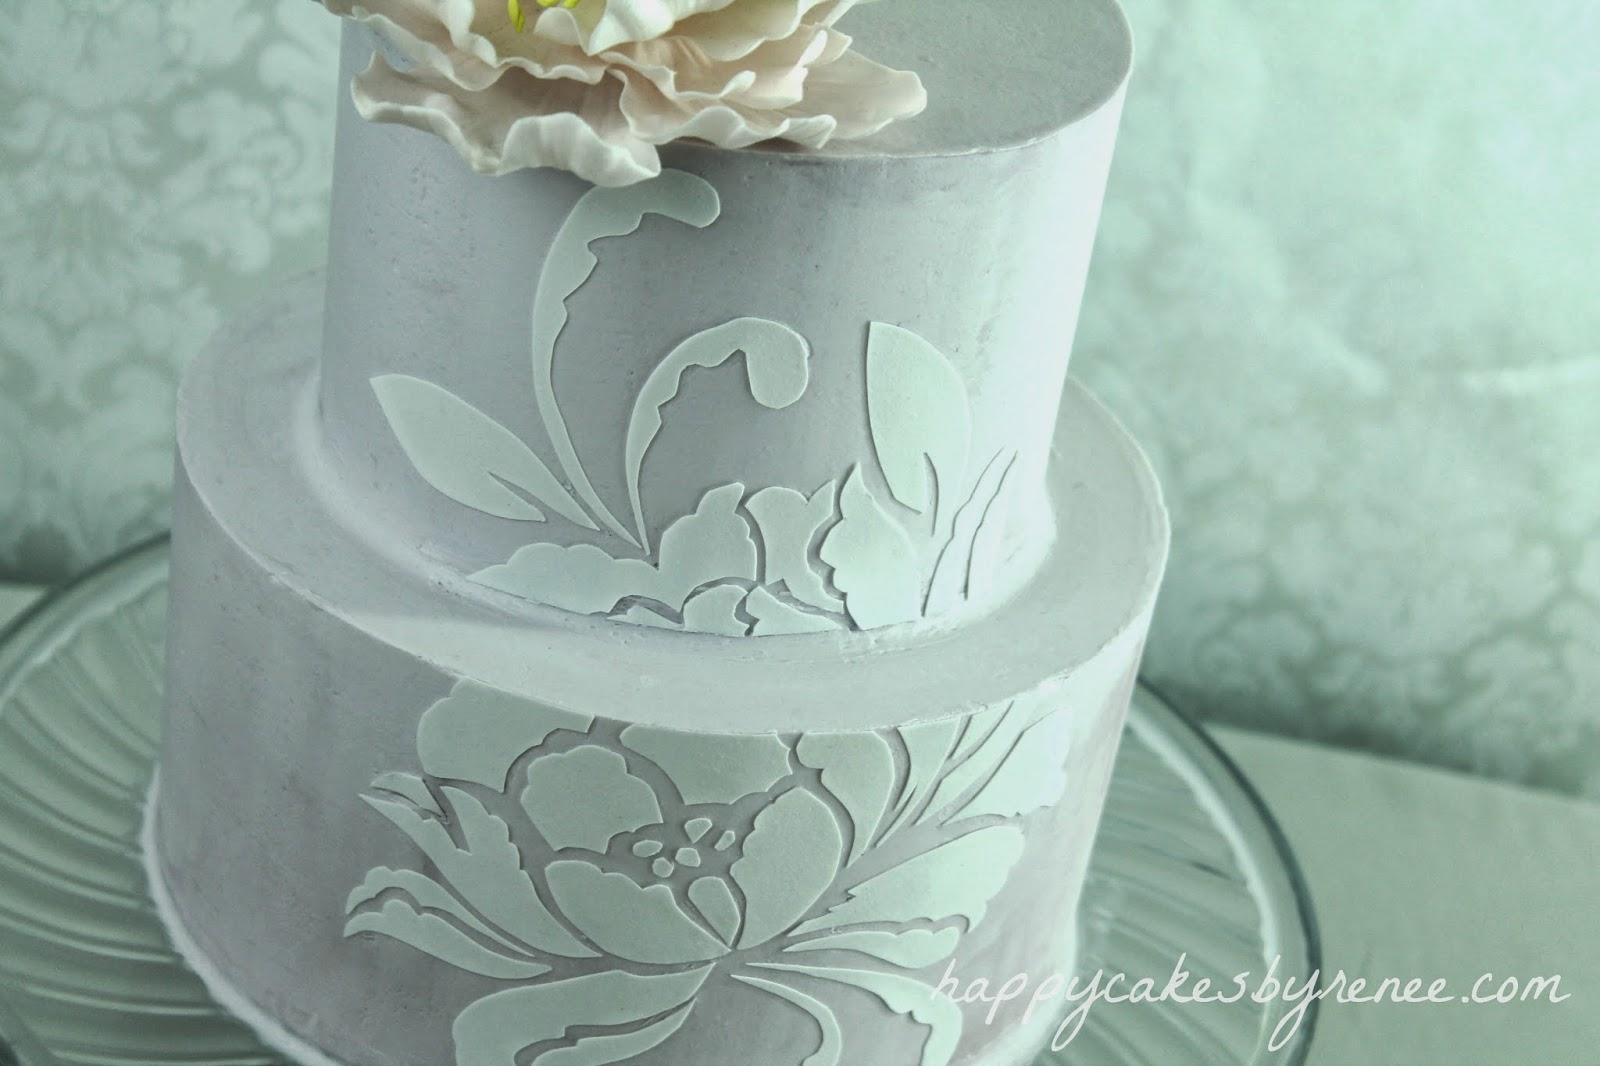 Happy Cakes by Renee Derry NH Wedding Cake